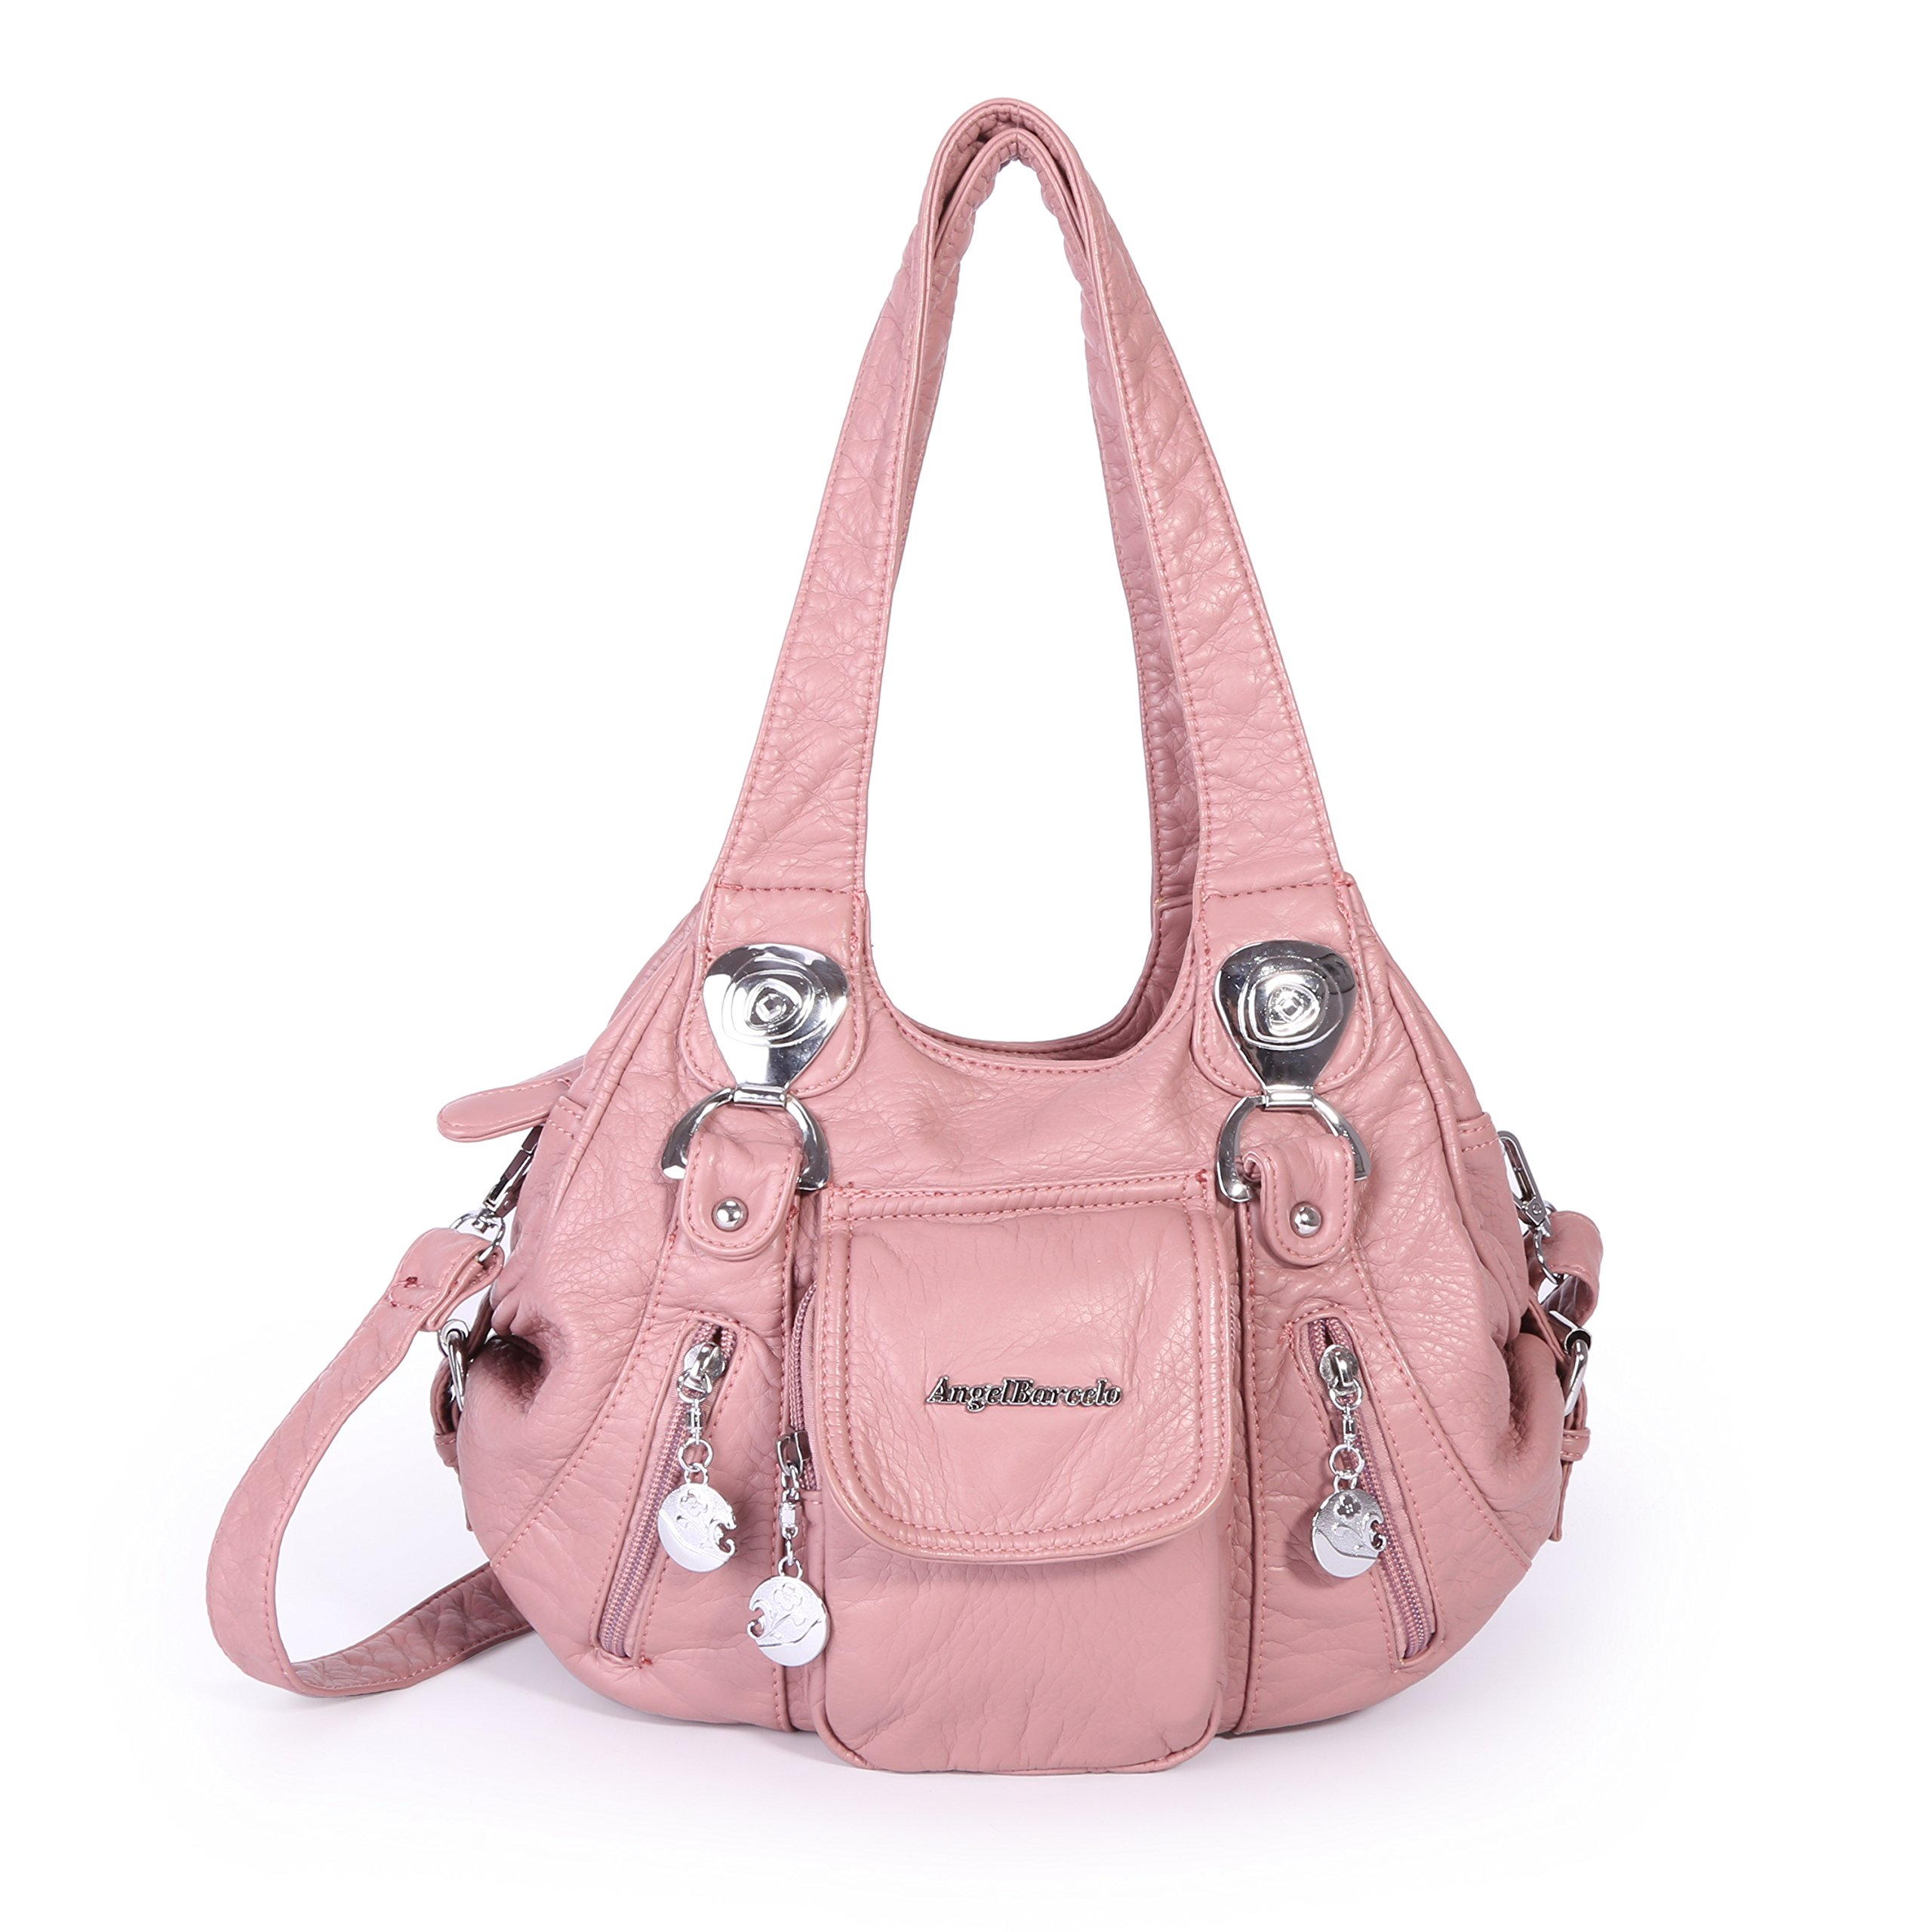 Angel Barcelo HandBags Soft Lether Mini Size (Pink)